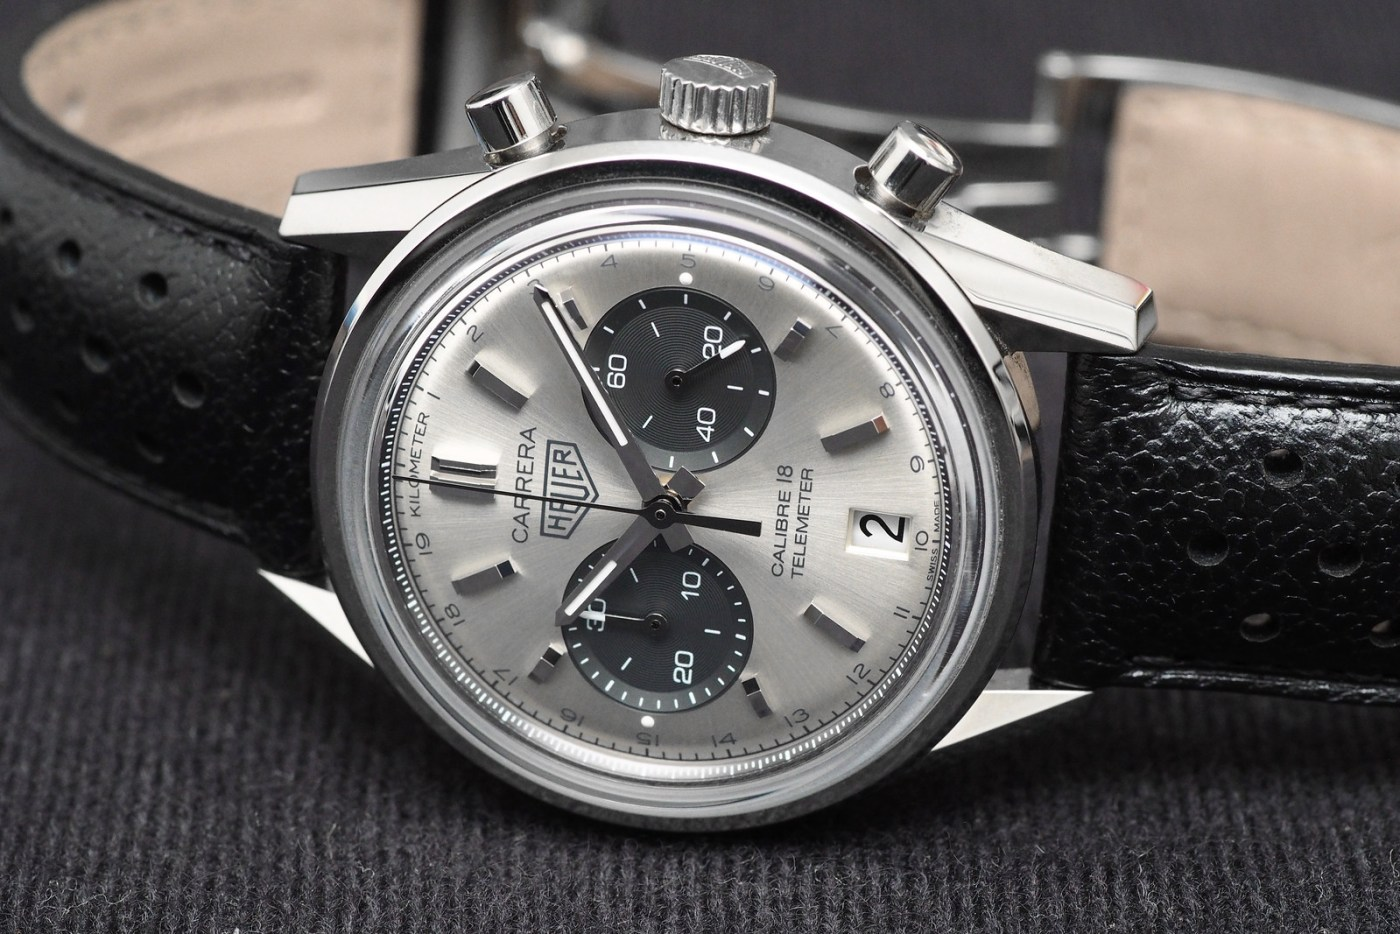 TAG Heuer Carrera Calibre 18 Automatic Chronograph side